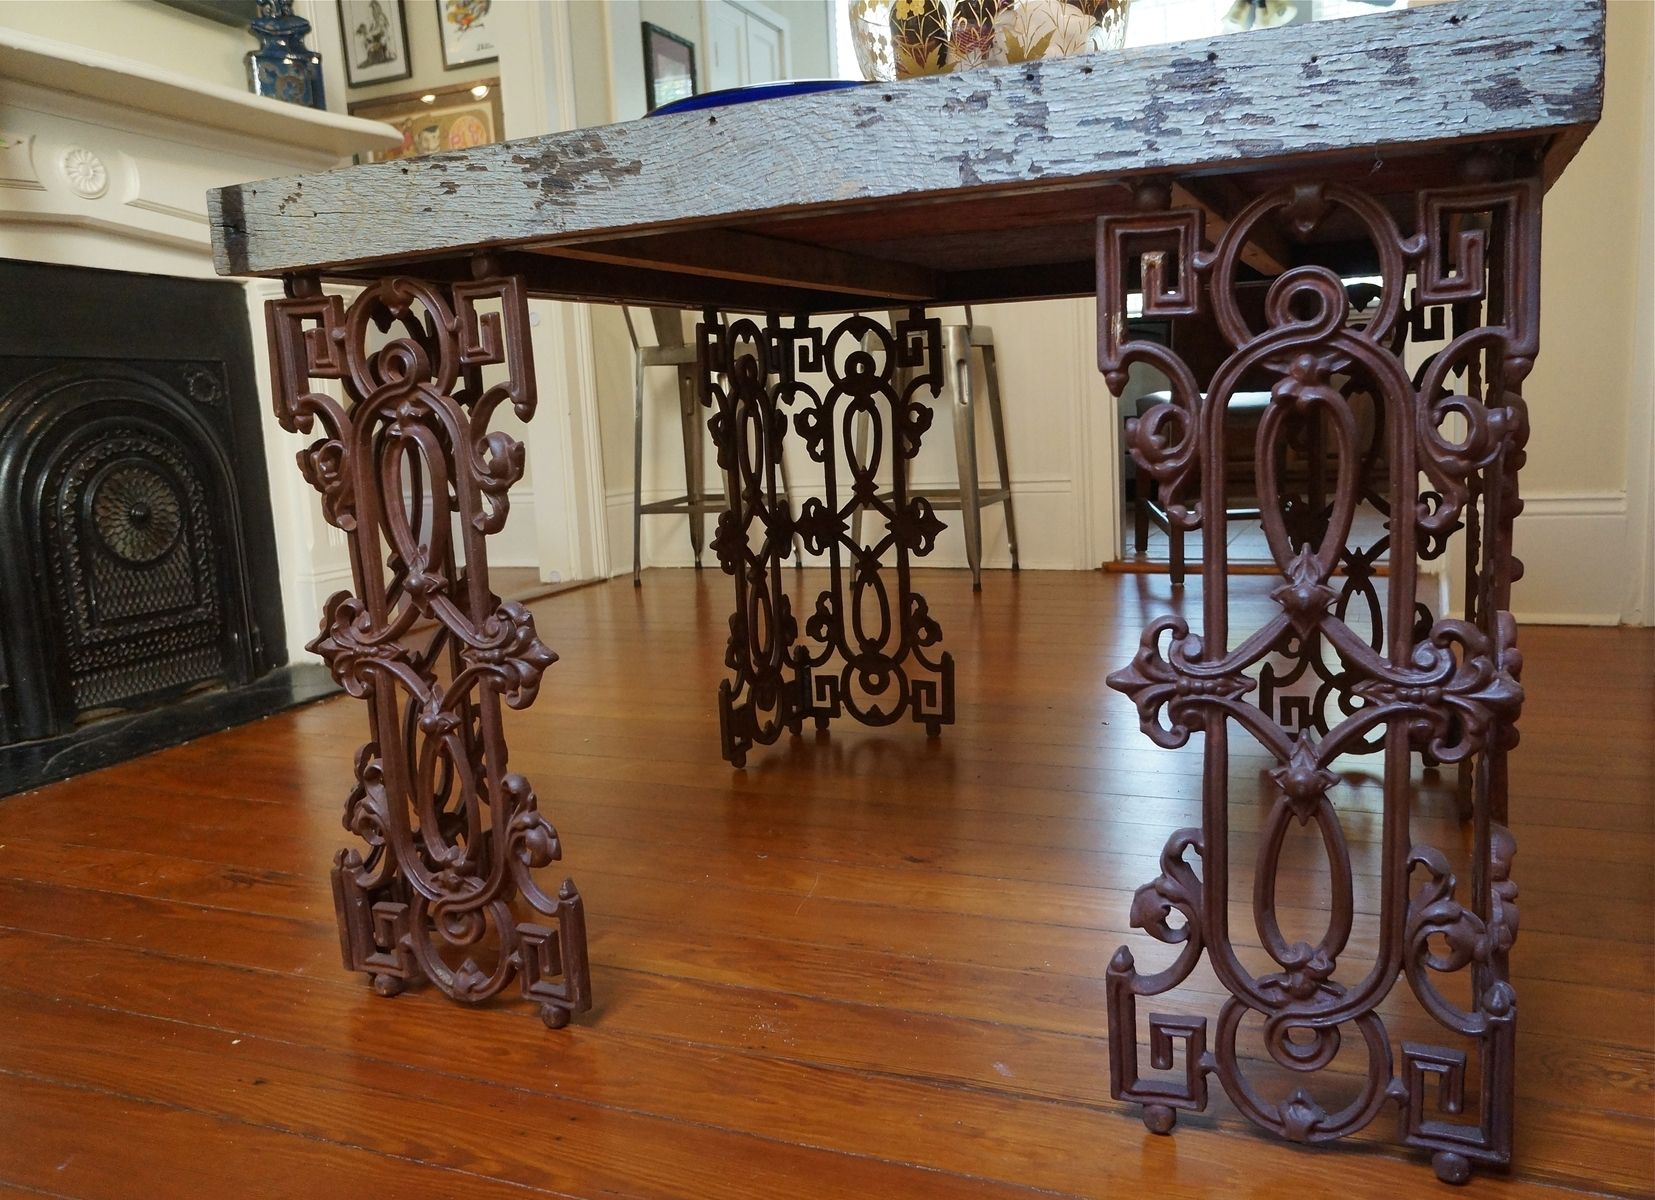 Hand Made New Orleans Dining Room Table From Distressed Wood And Wrought Iron By Doorman Designs Custommade